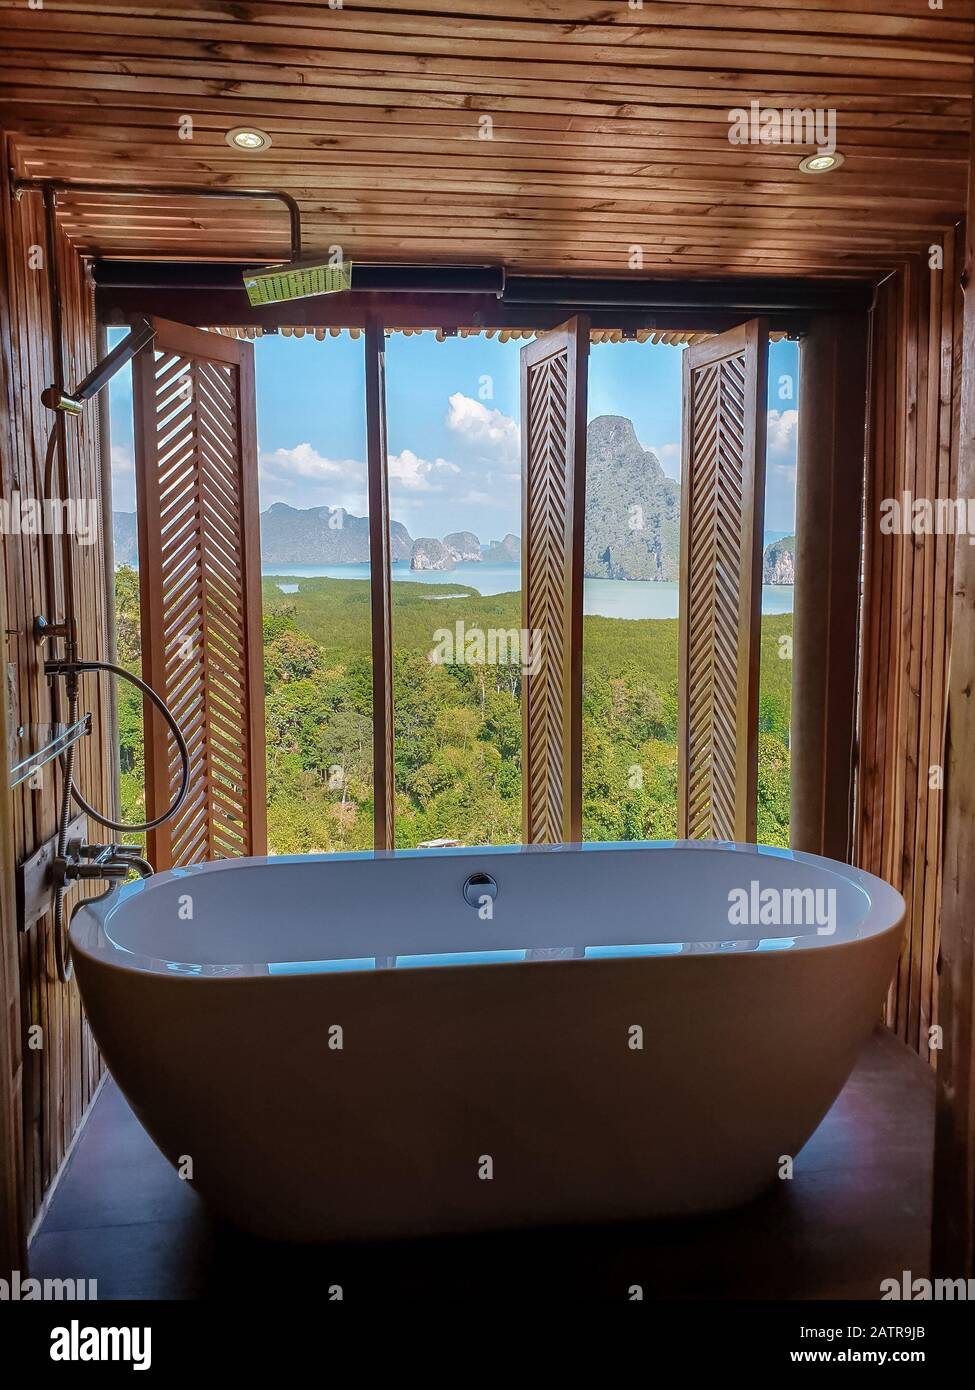 Luxury Bathroom Looking Out Over The Ocean Of Thailand Bath Tub In Wooden Room Stock Photo Alamy